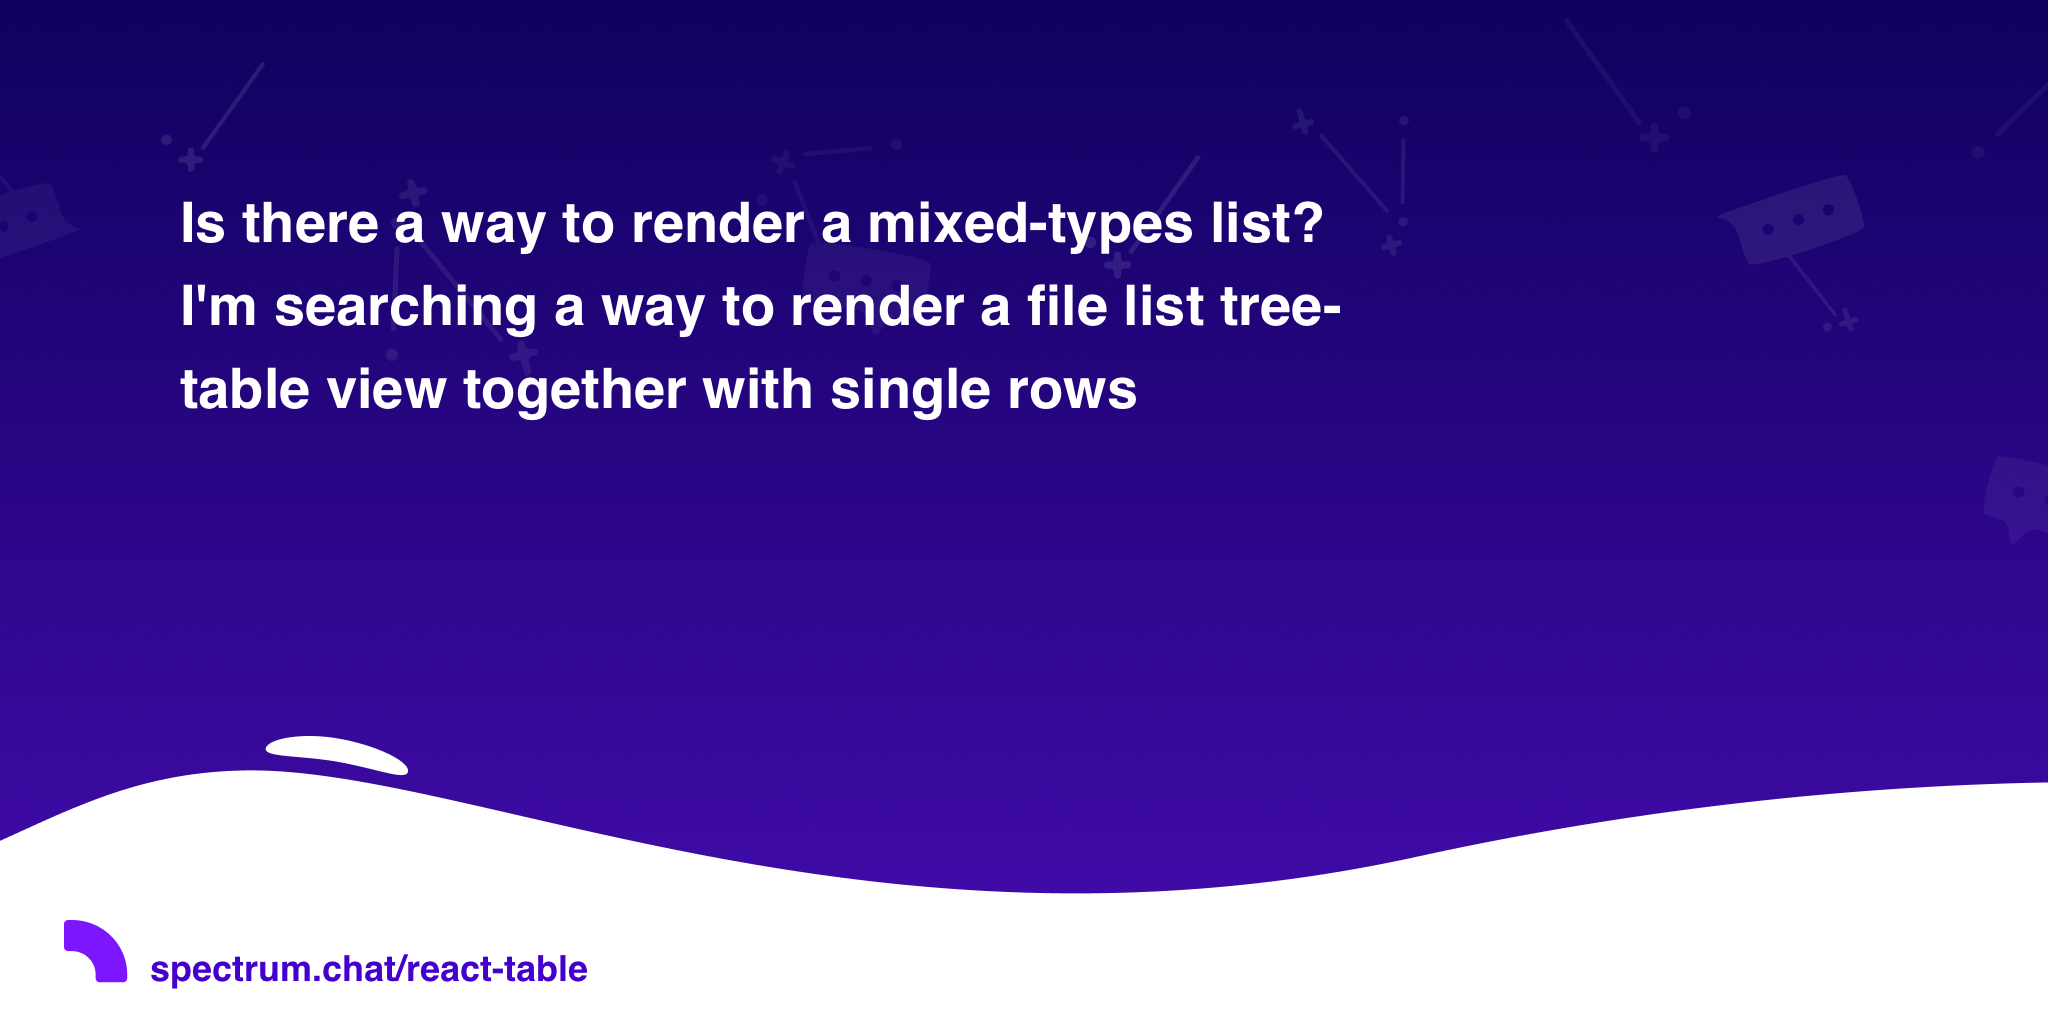 Is there a way to render a mixed-types list? I'm searching a